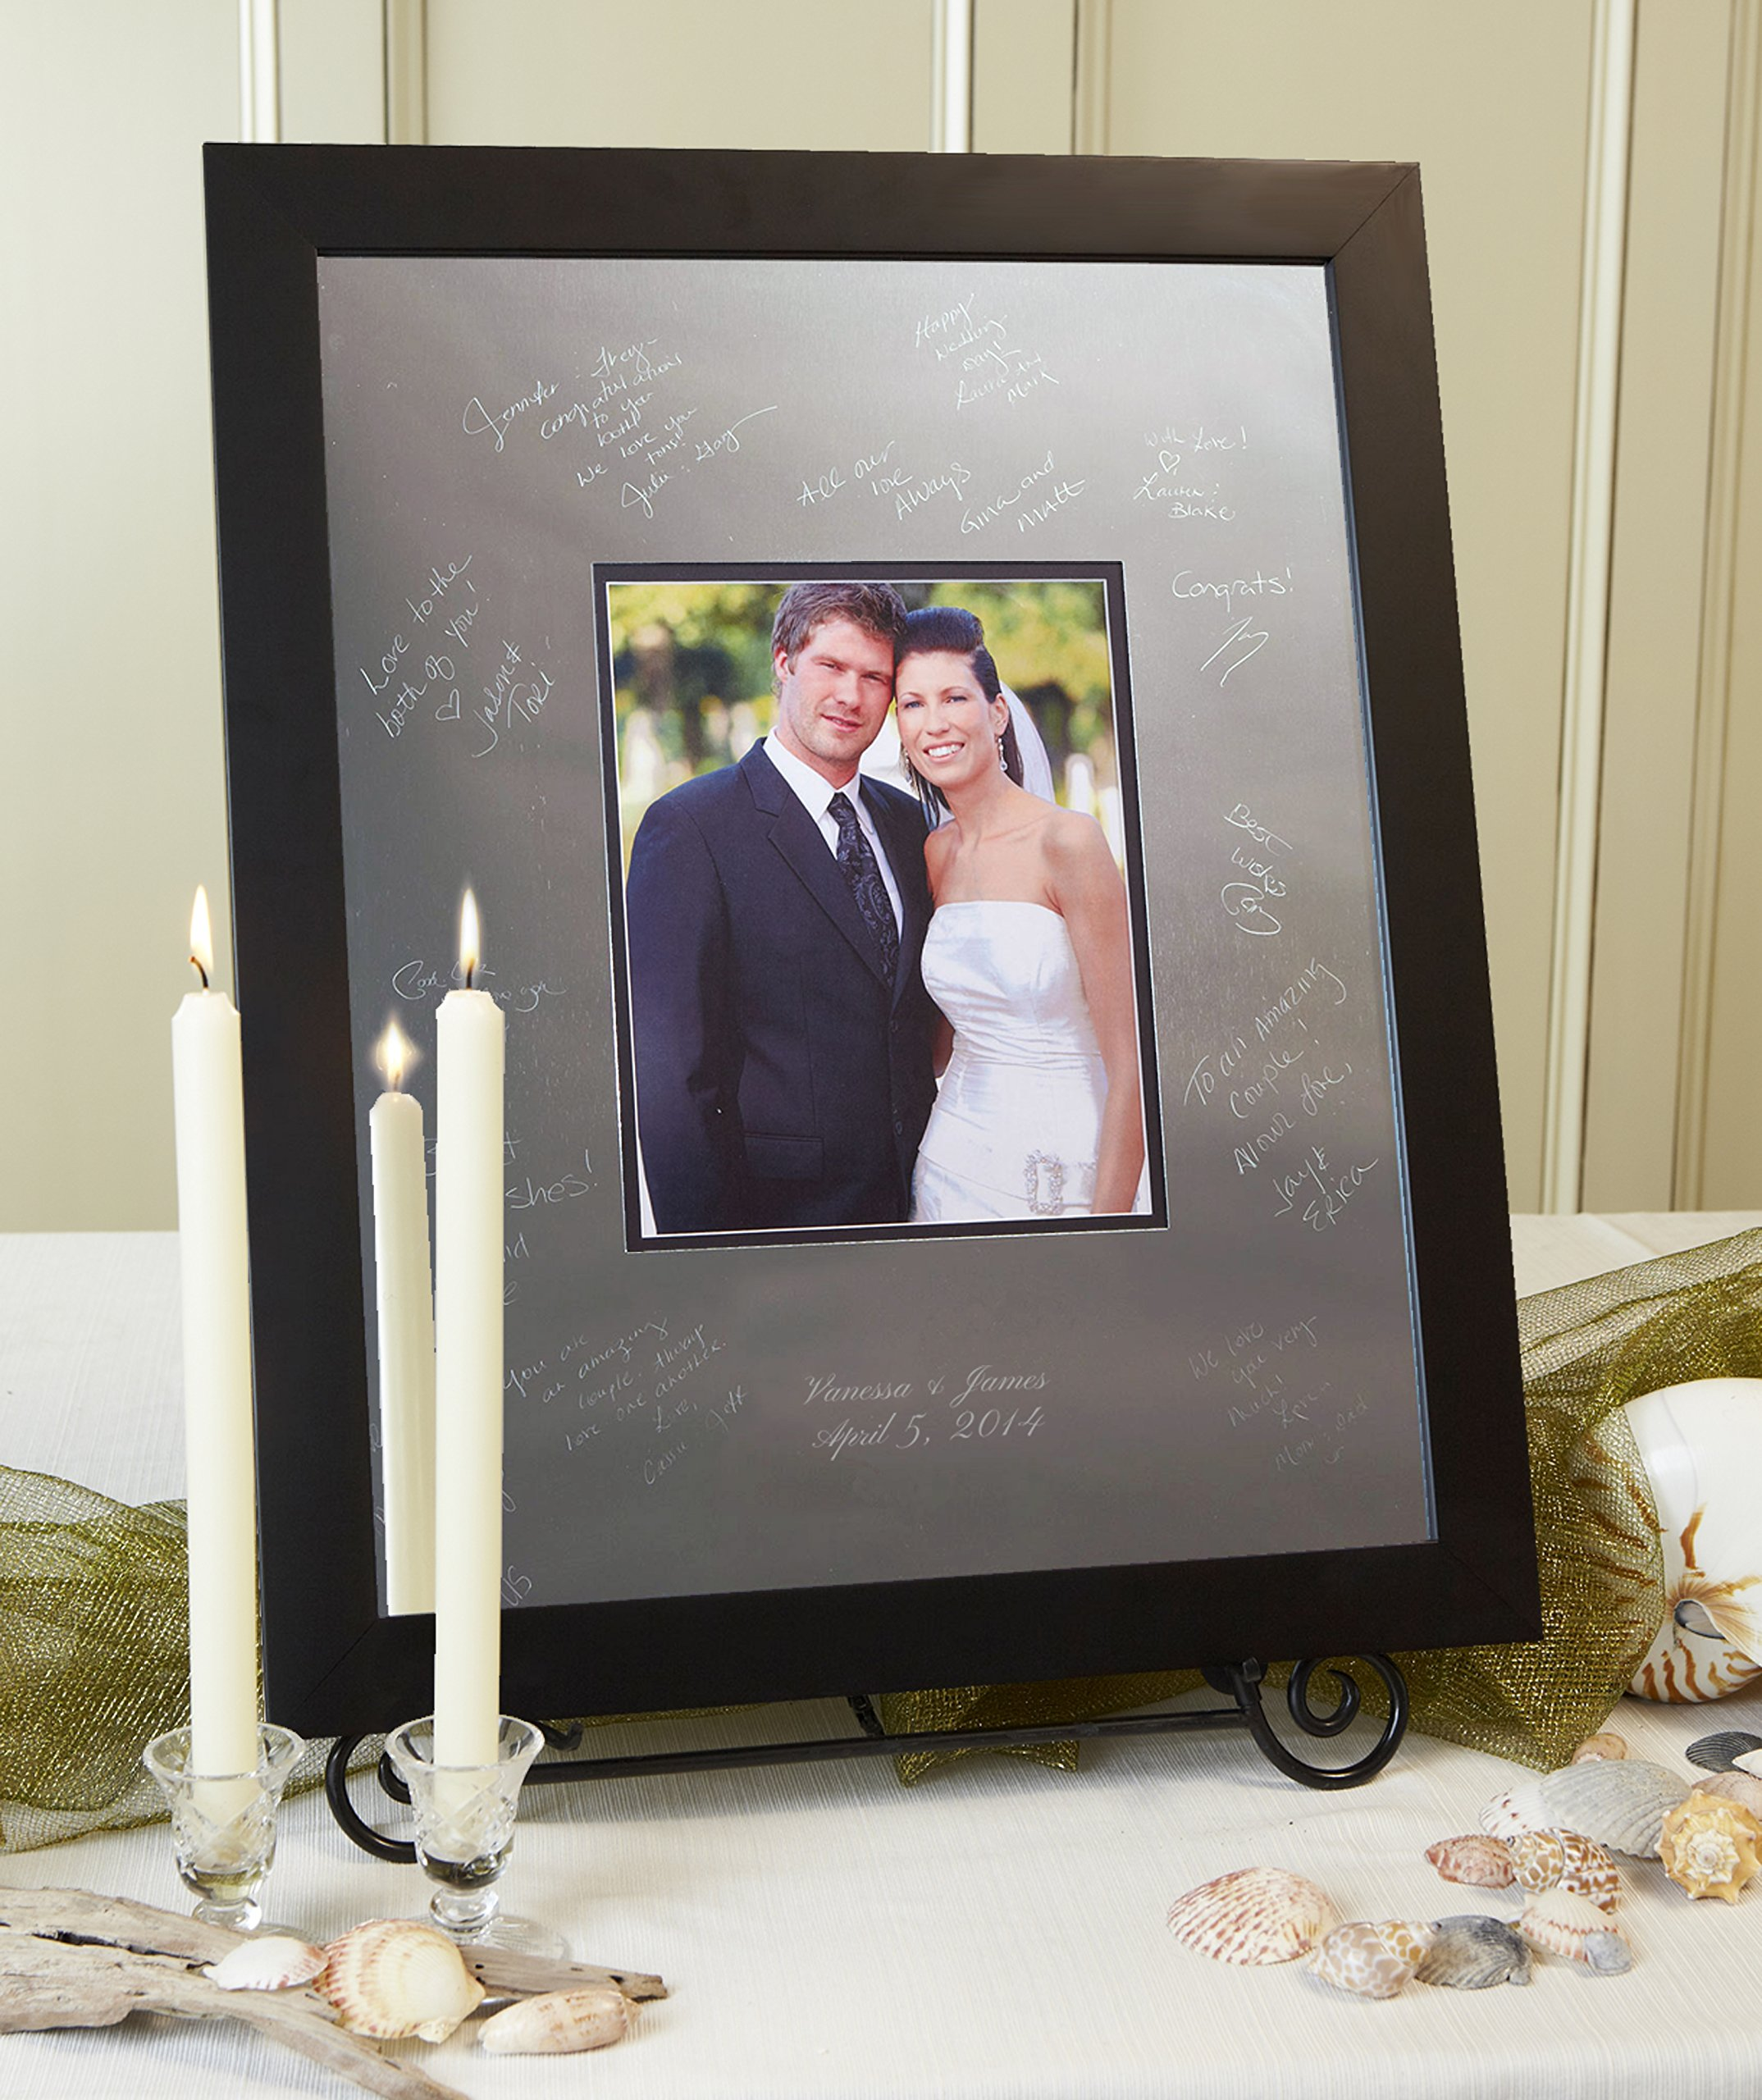 Signature Keepsakes Frame Engravable Signature Mat Guest Book, Large, Silver/Black by Signature Keepsakes